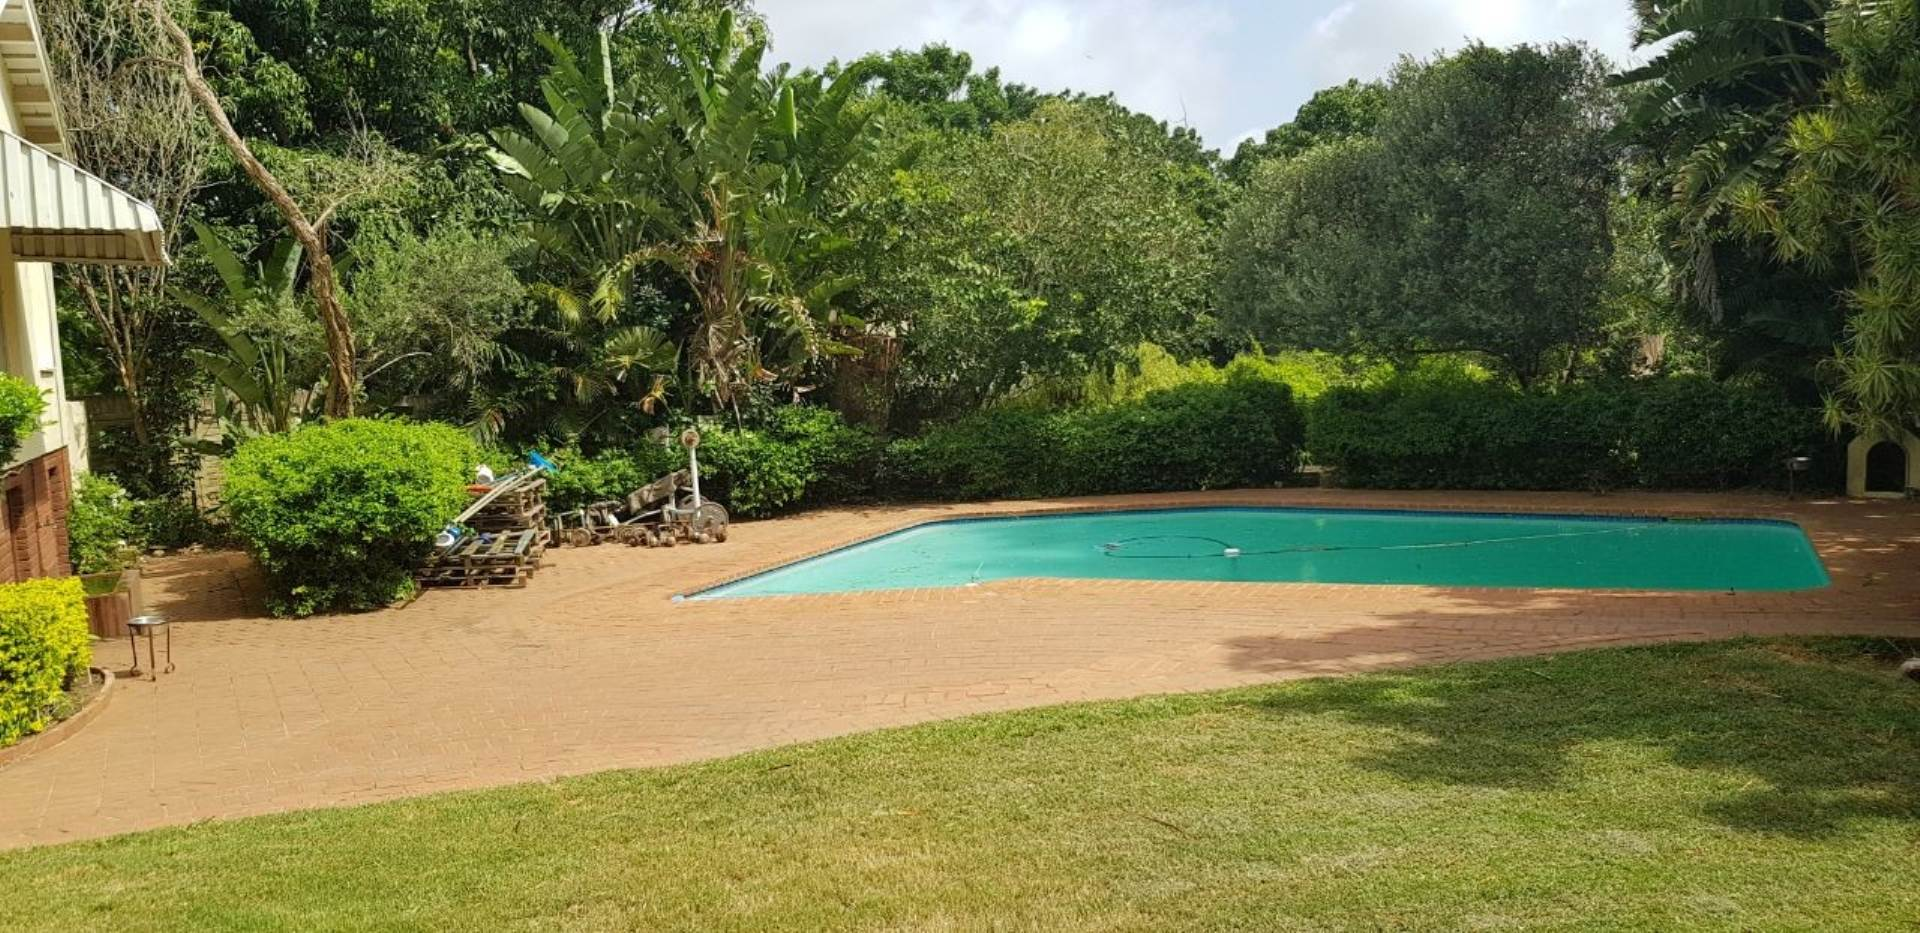 5 BedroomHouse For Sale In Fairview